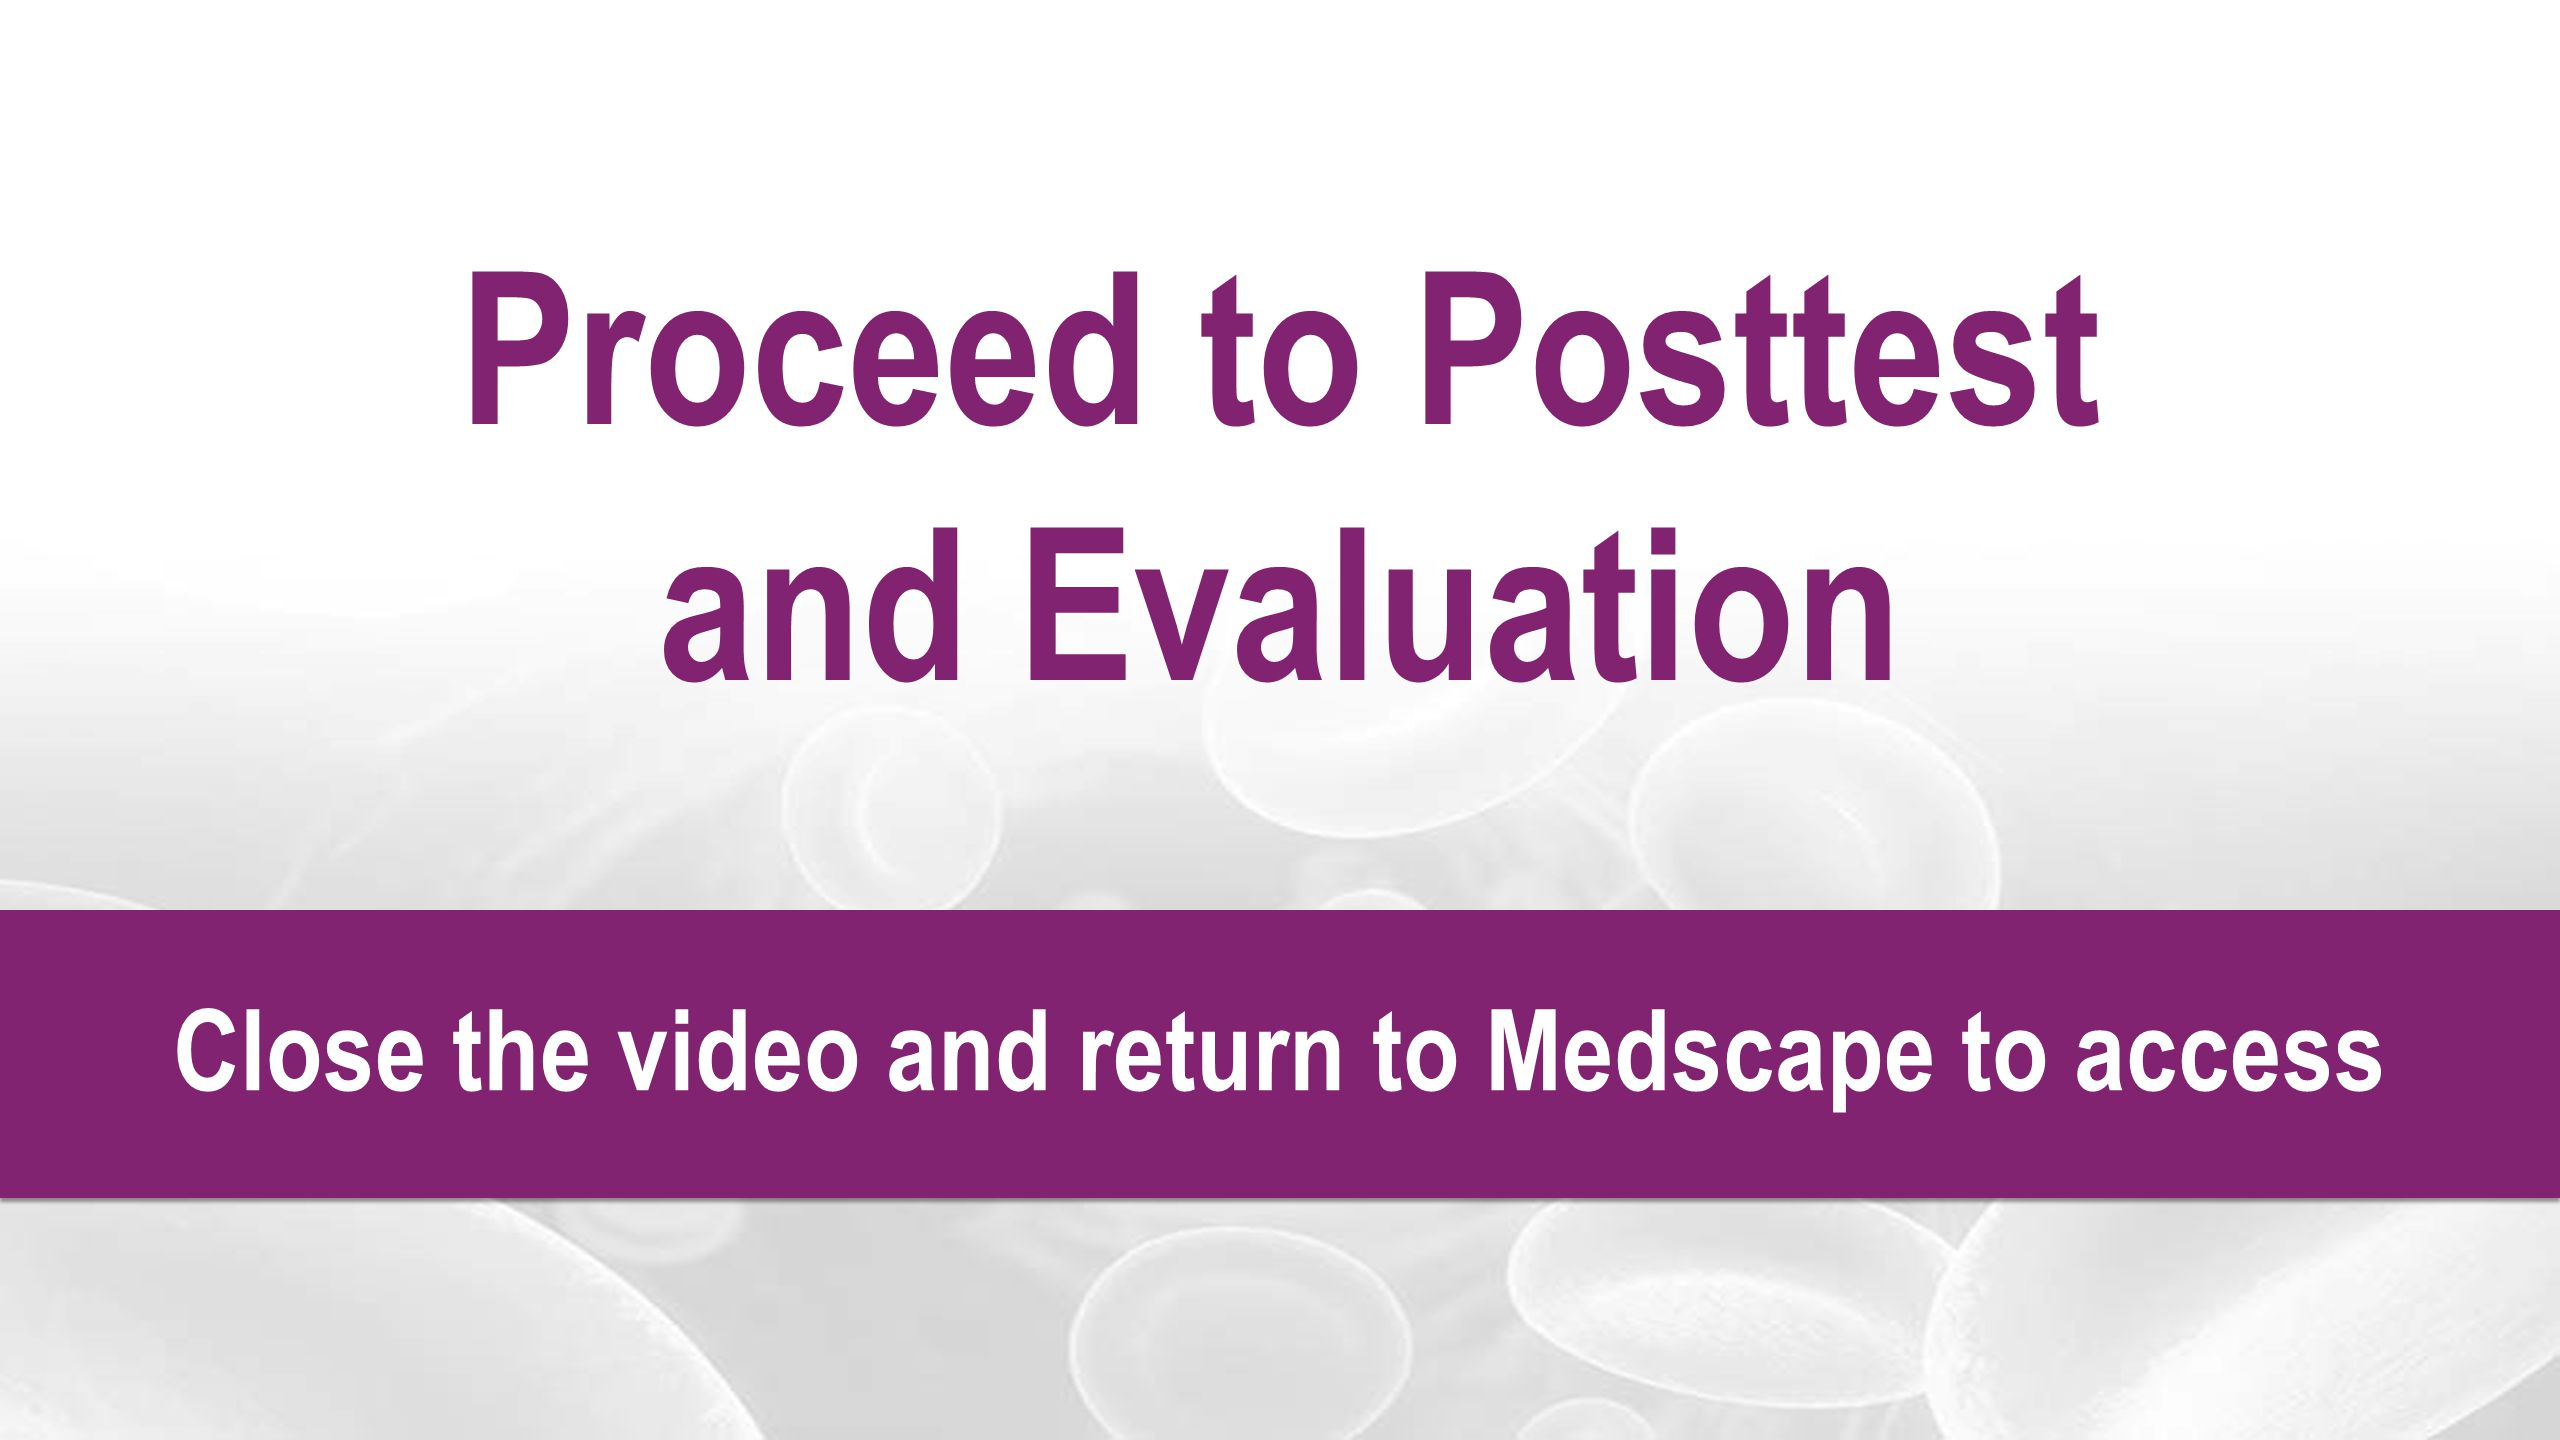 Proceed to Posttest and Evaluation Close the video and return to Medscape to access